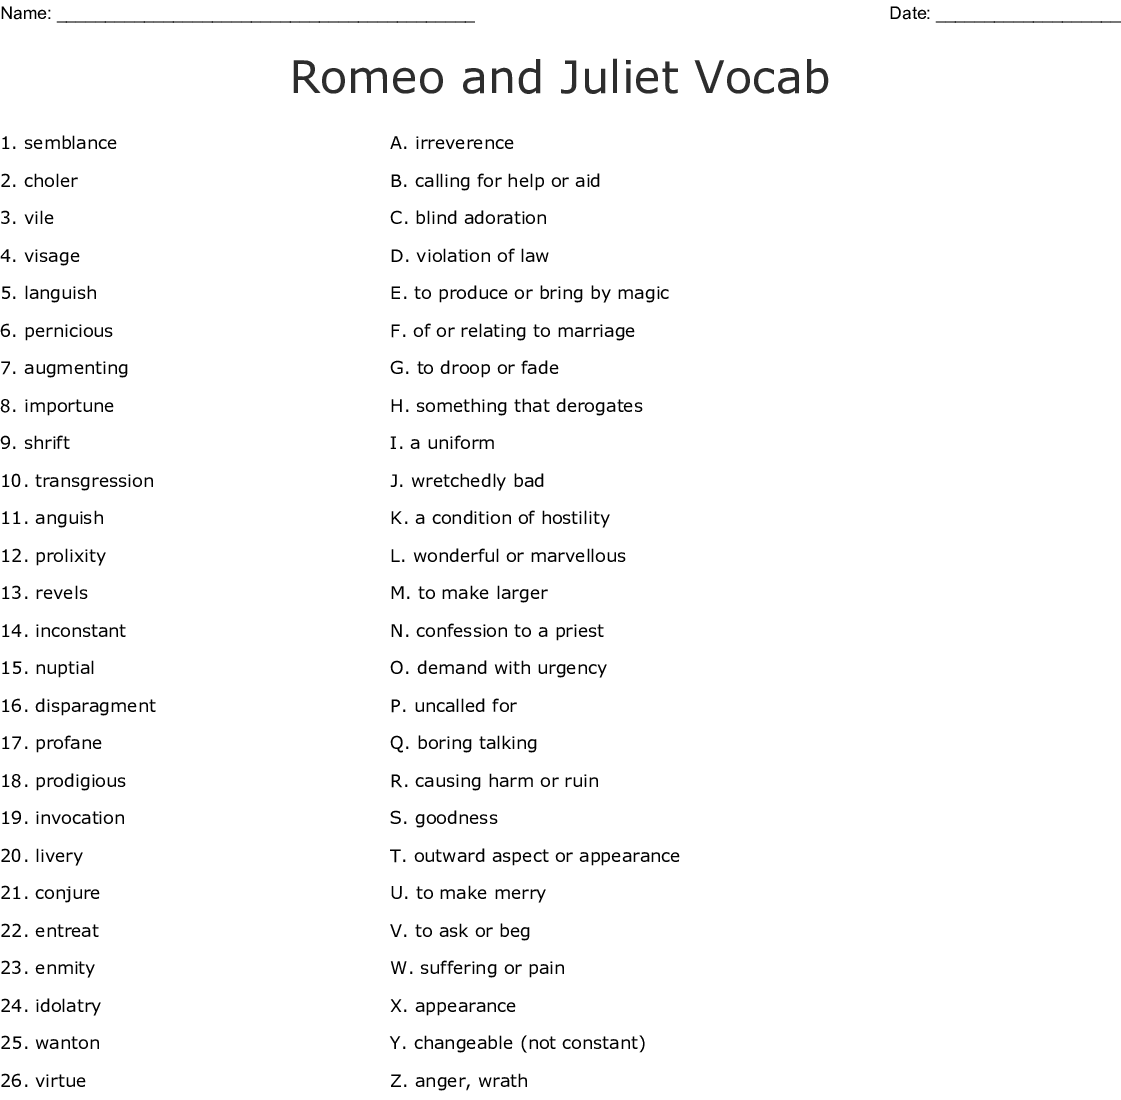 Romeo And Juliet Vocab Act 1 Crossword